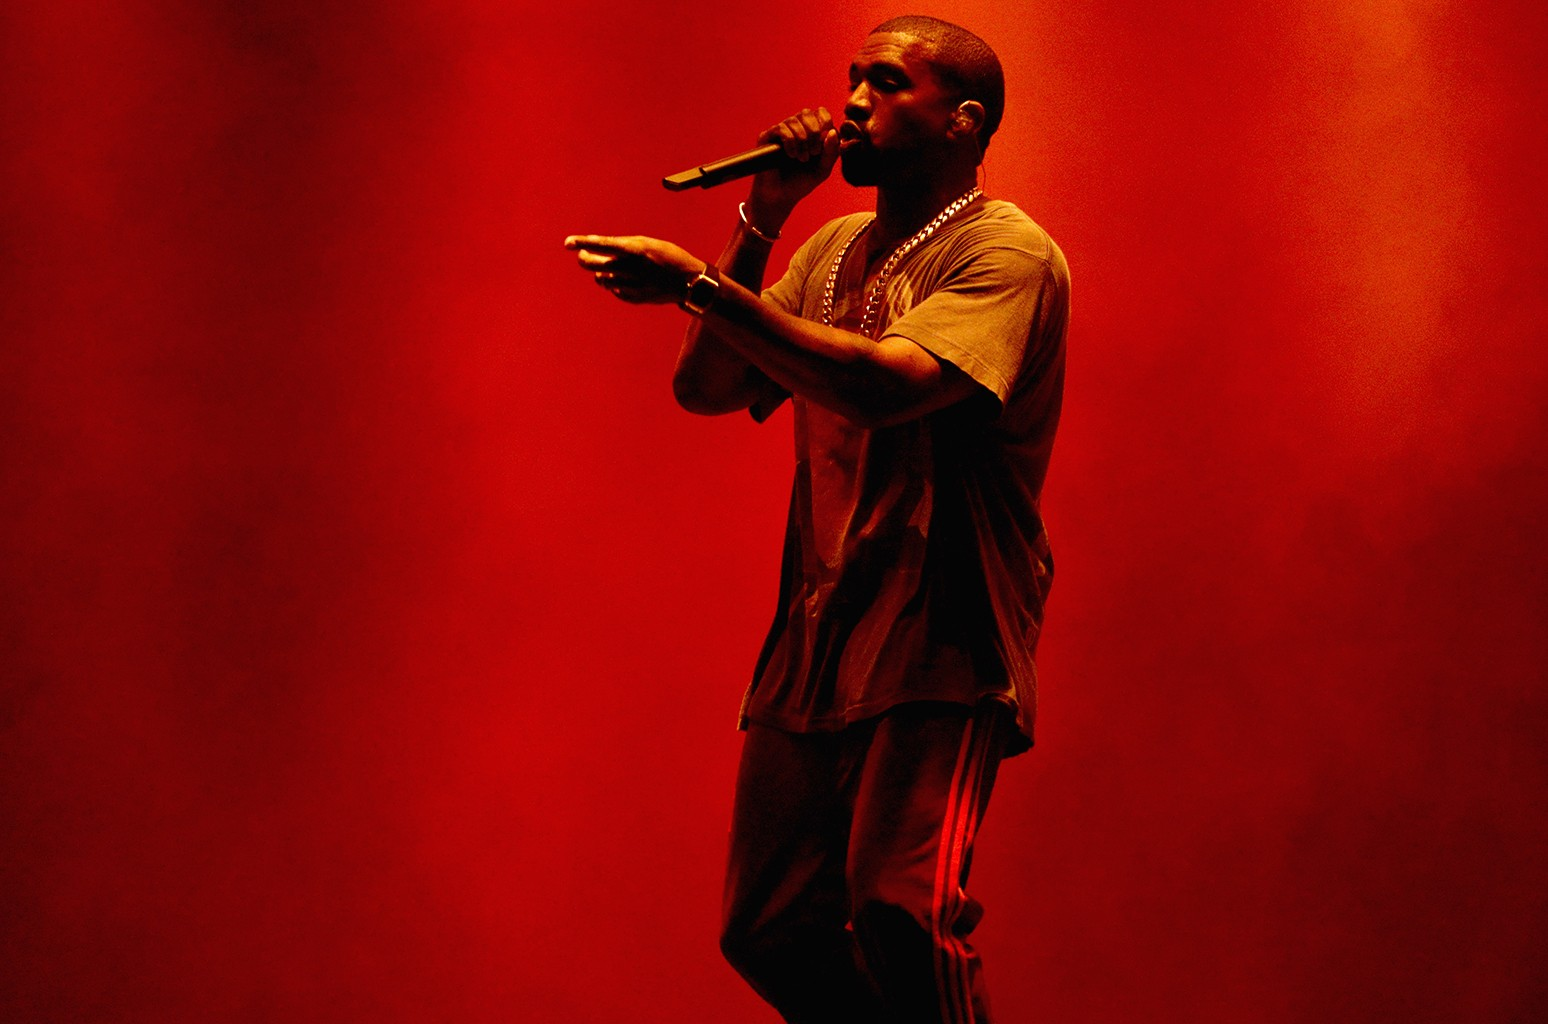 Kanye West performs in 2016